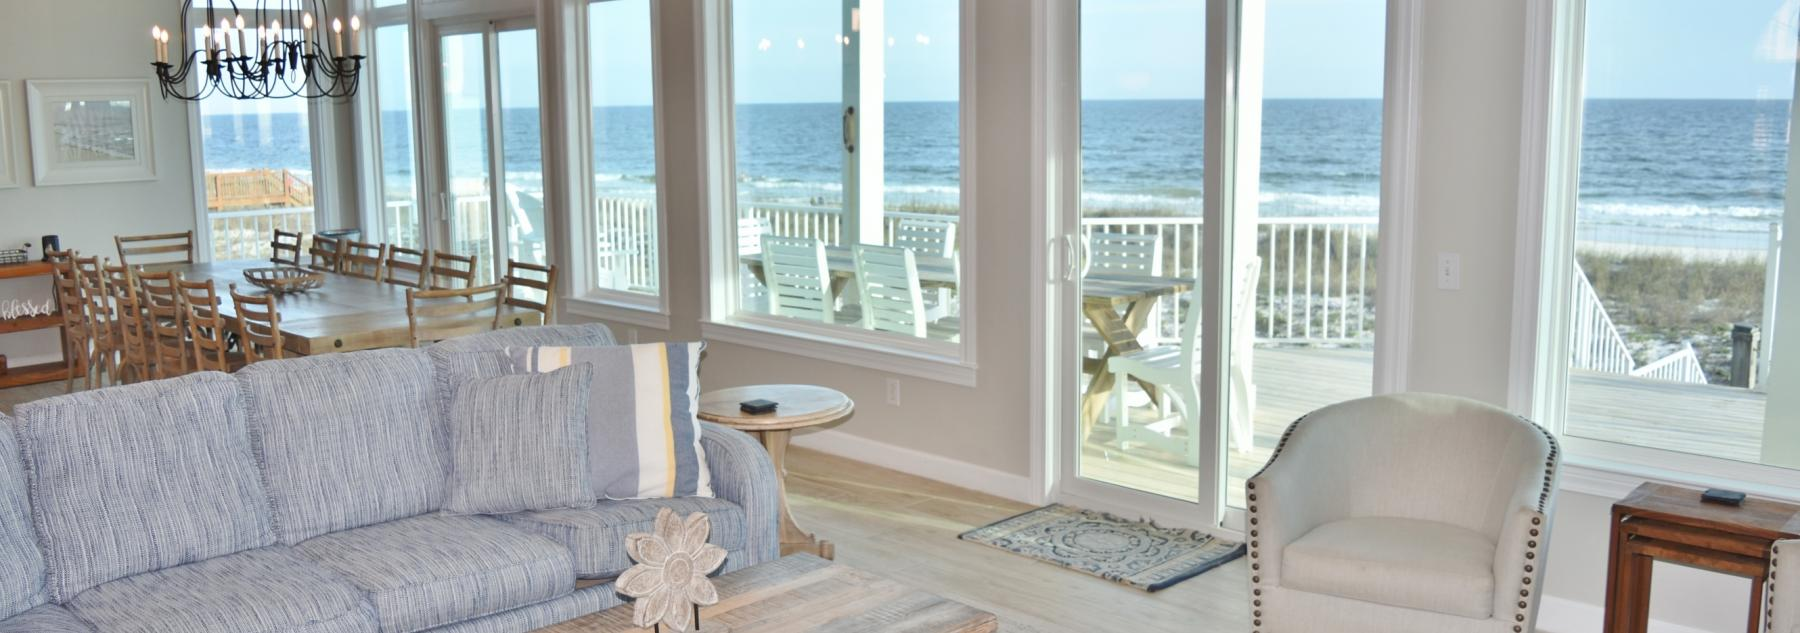 Gulf Shores Beach house view from living room